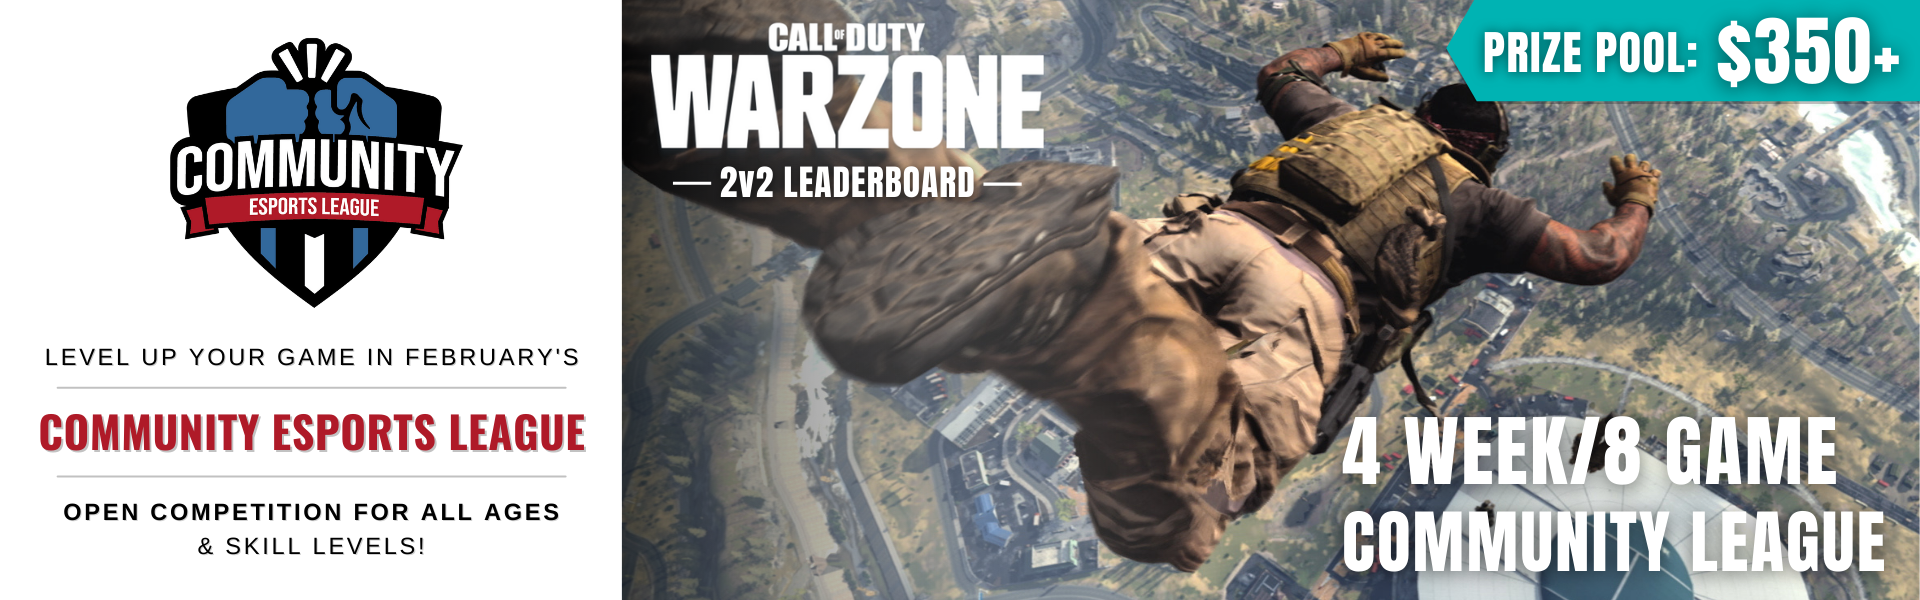 Call of Duty Warzone: February 21